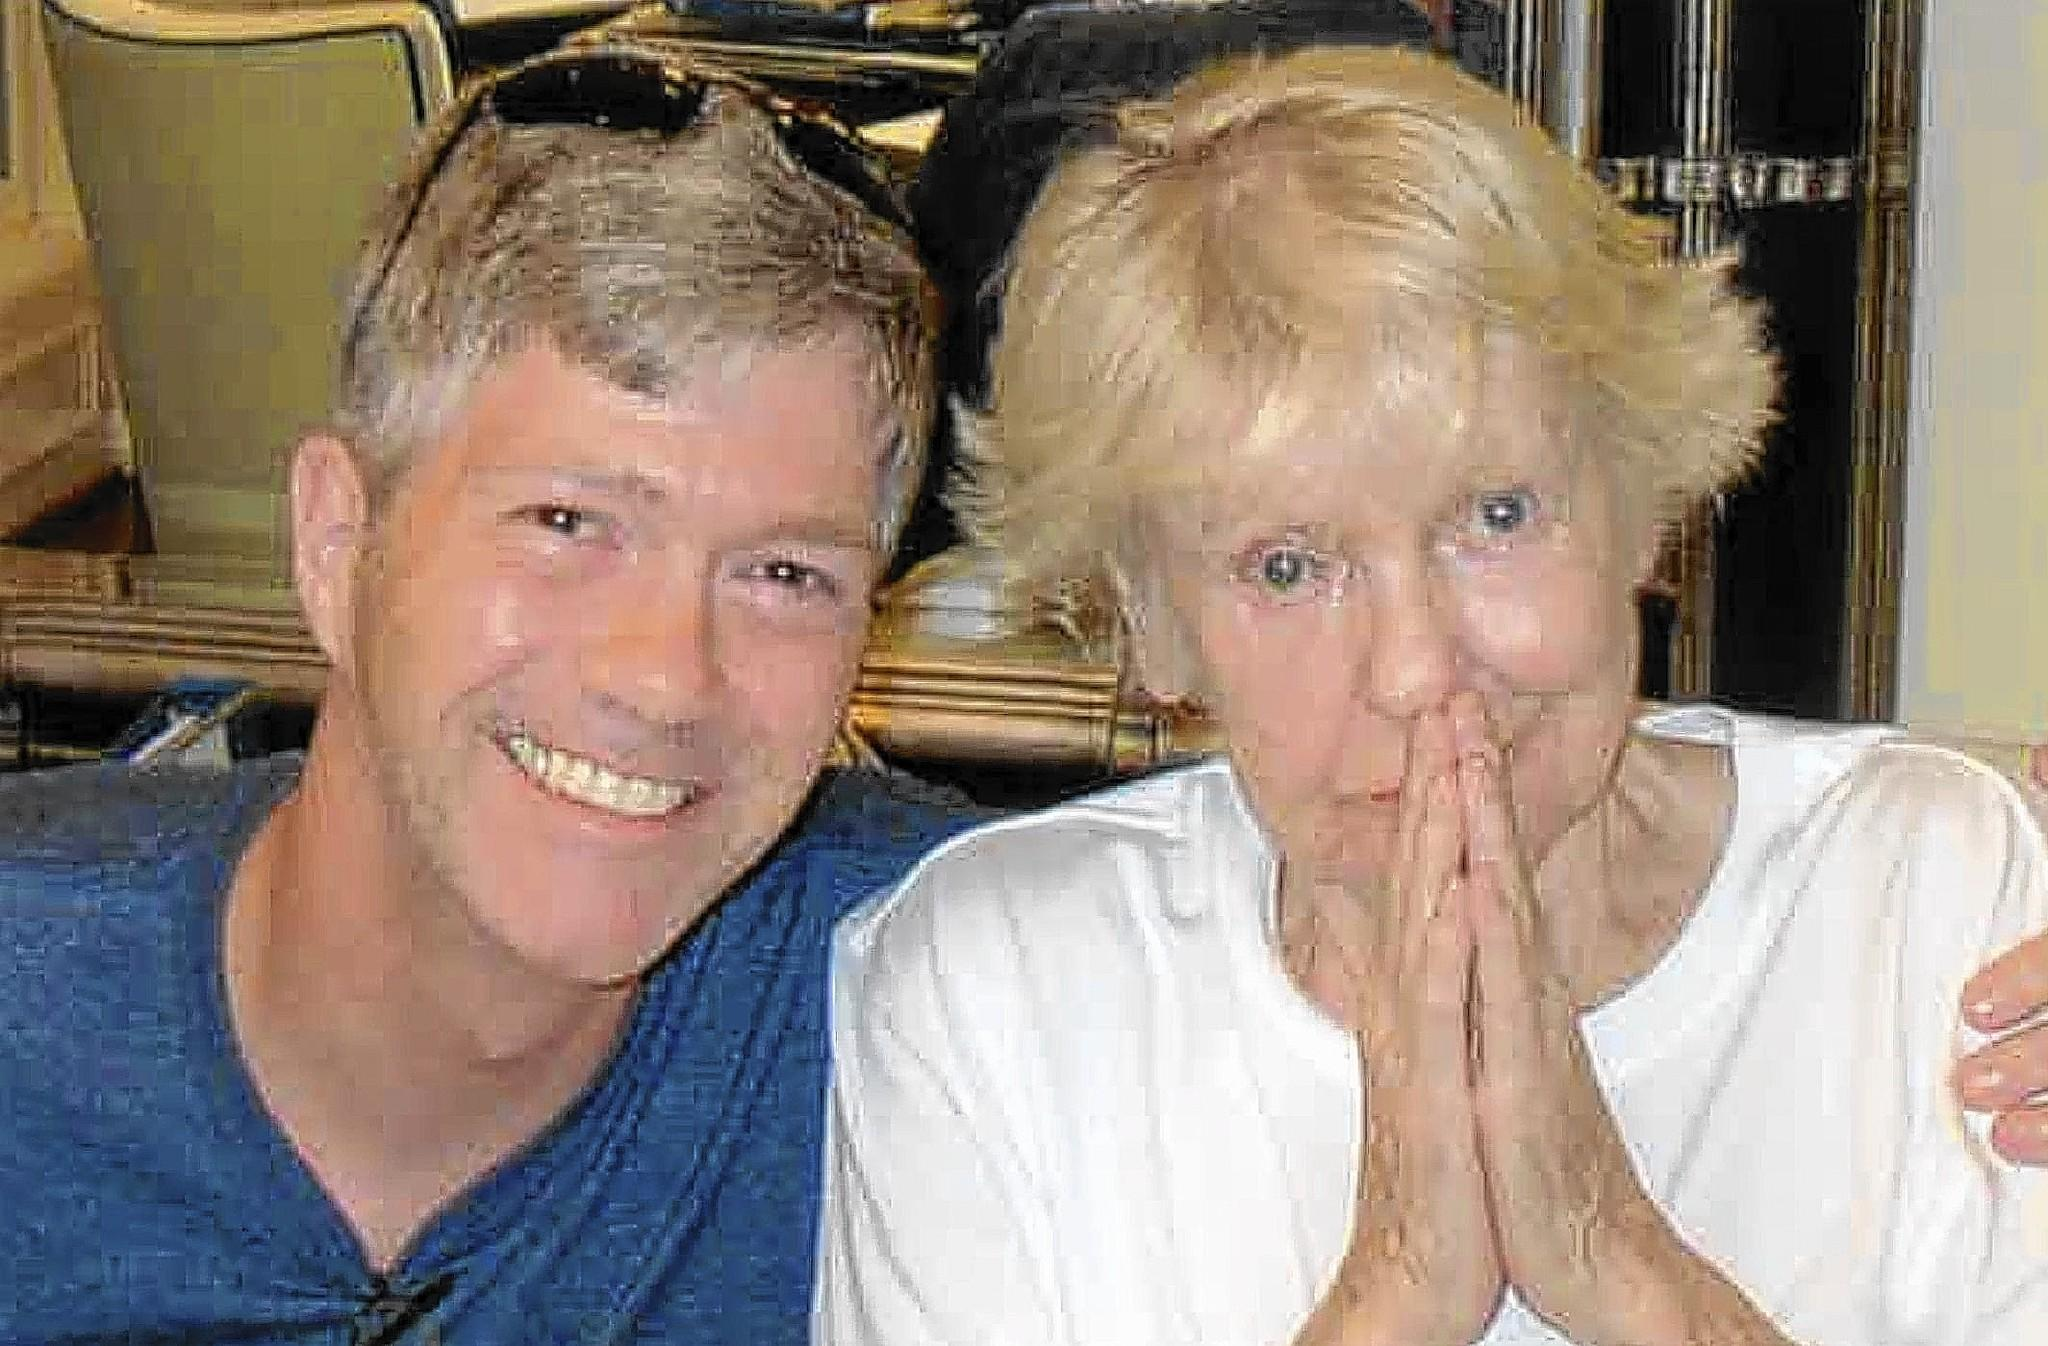 DeSale University's John Bell, head of the division of performing arts, during a 2013 visit with Elaine Stritch at her home in in Birmingham, Mich. The two were friends for six years.